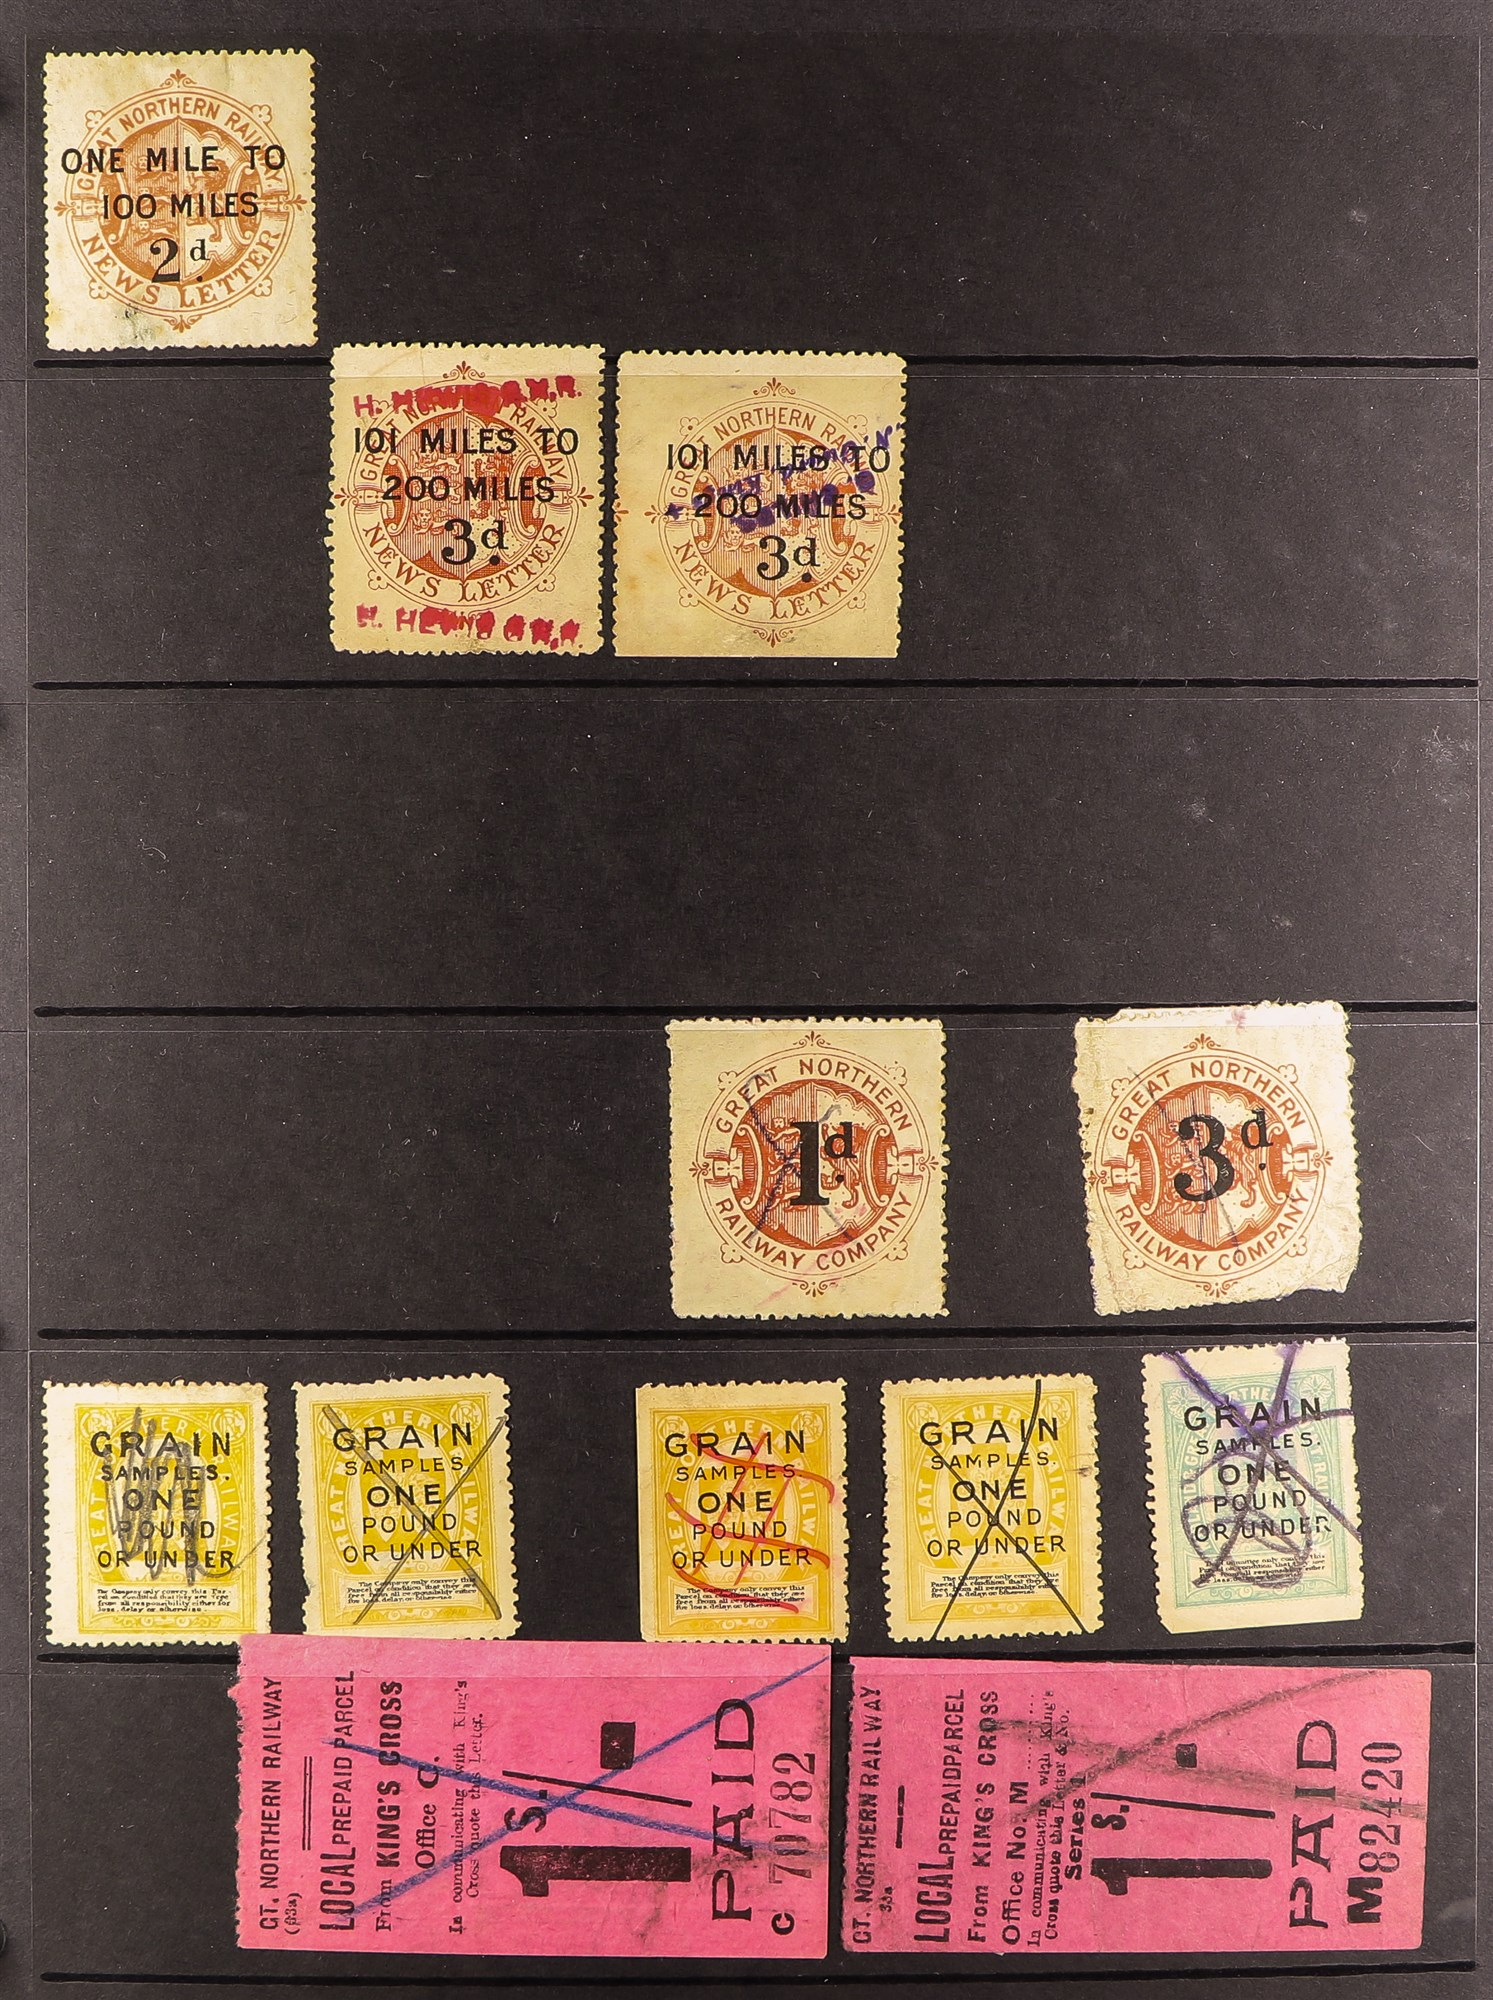 GREAT BRITAIN RAILWAY LETTER AND NEWSPAPER STAMPS 1890's-1940's COLLECTION in two albums, mint and - Image 16 of 24